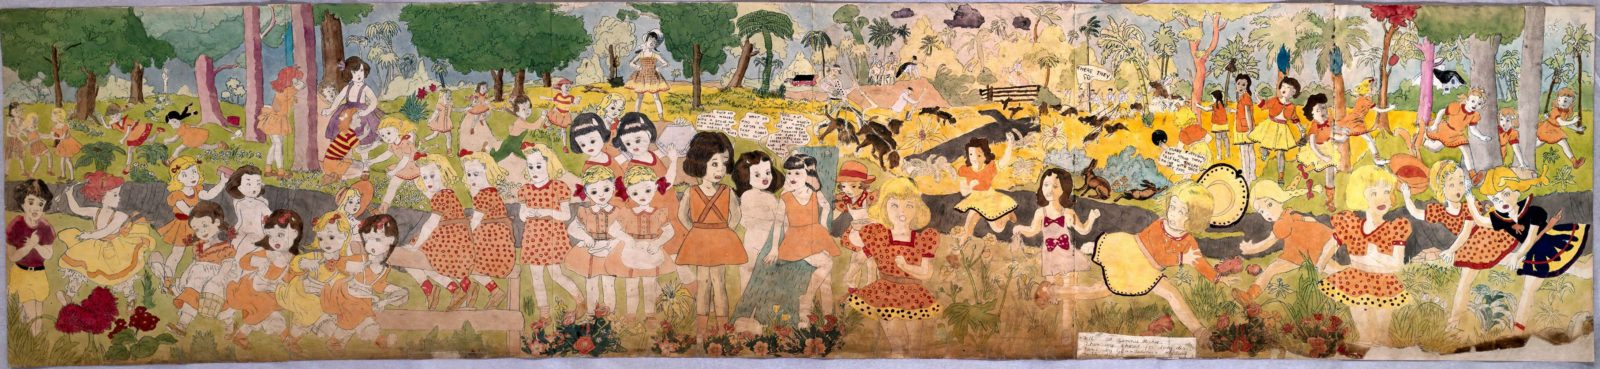 Henry Darger, 216 At Jennie Richee. Then are chased for long distance ...